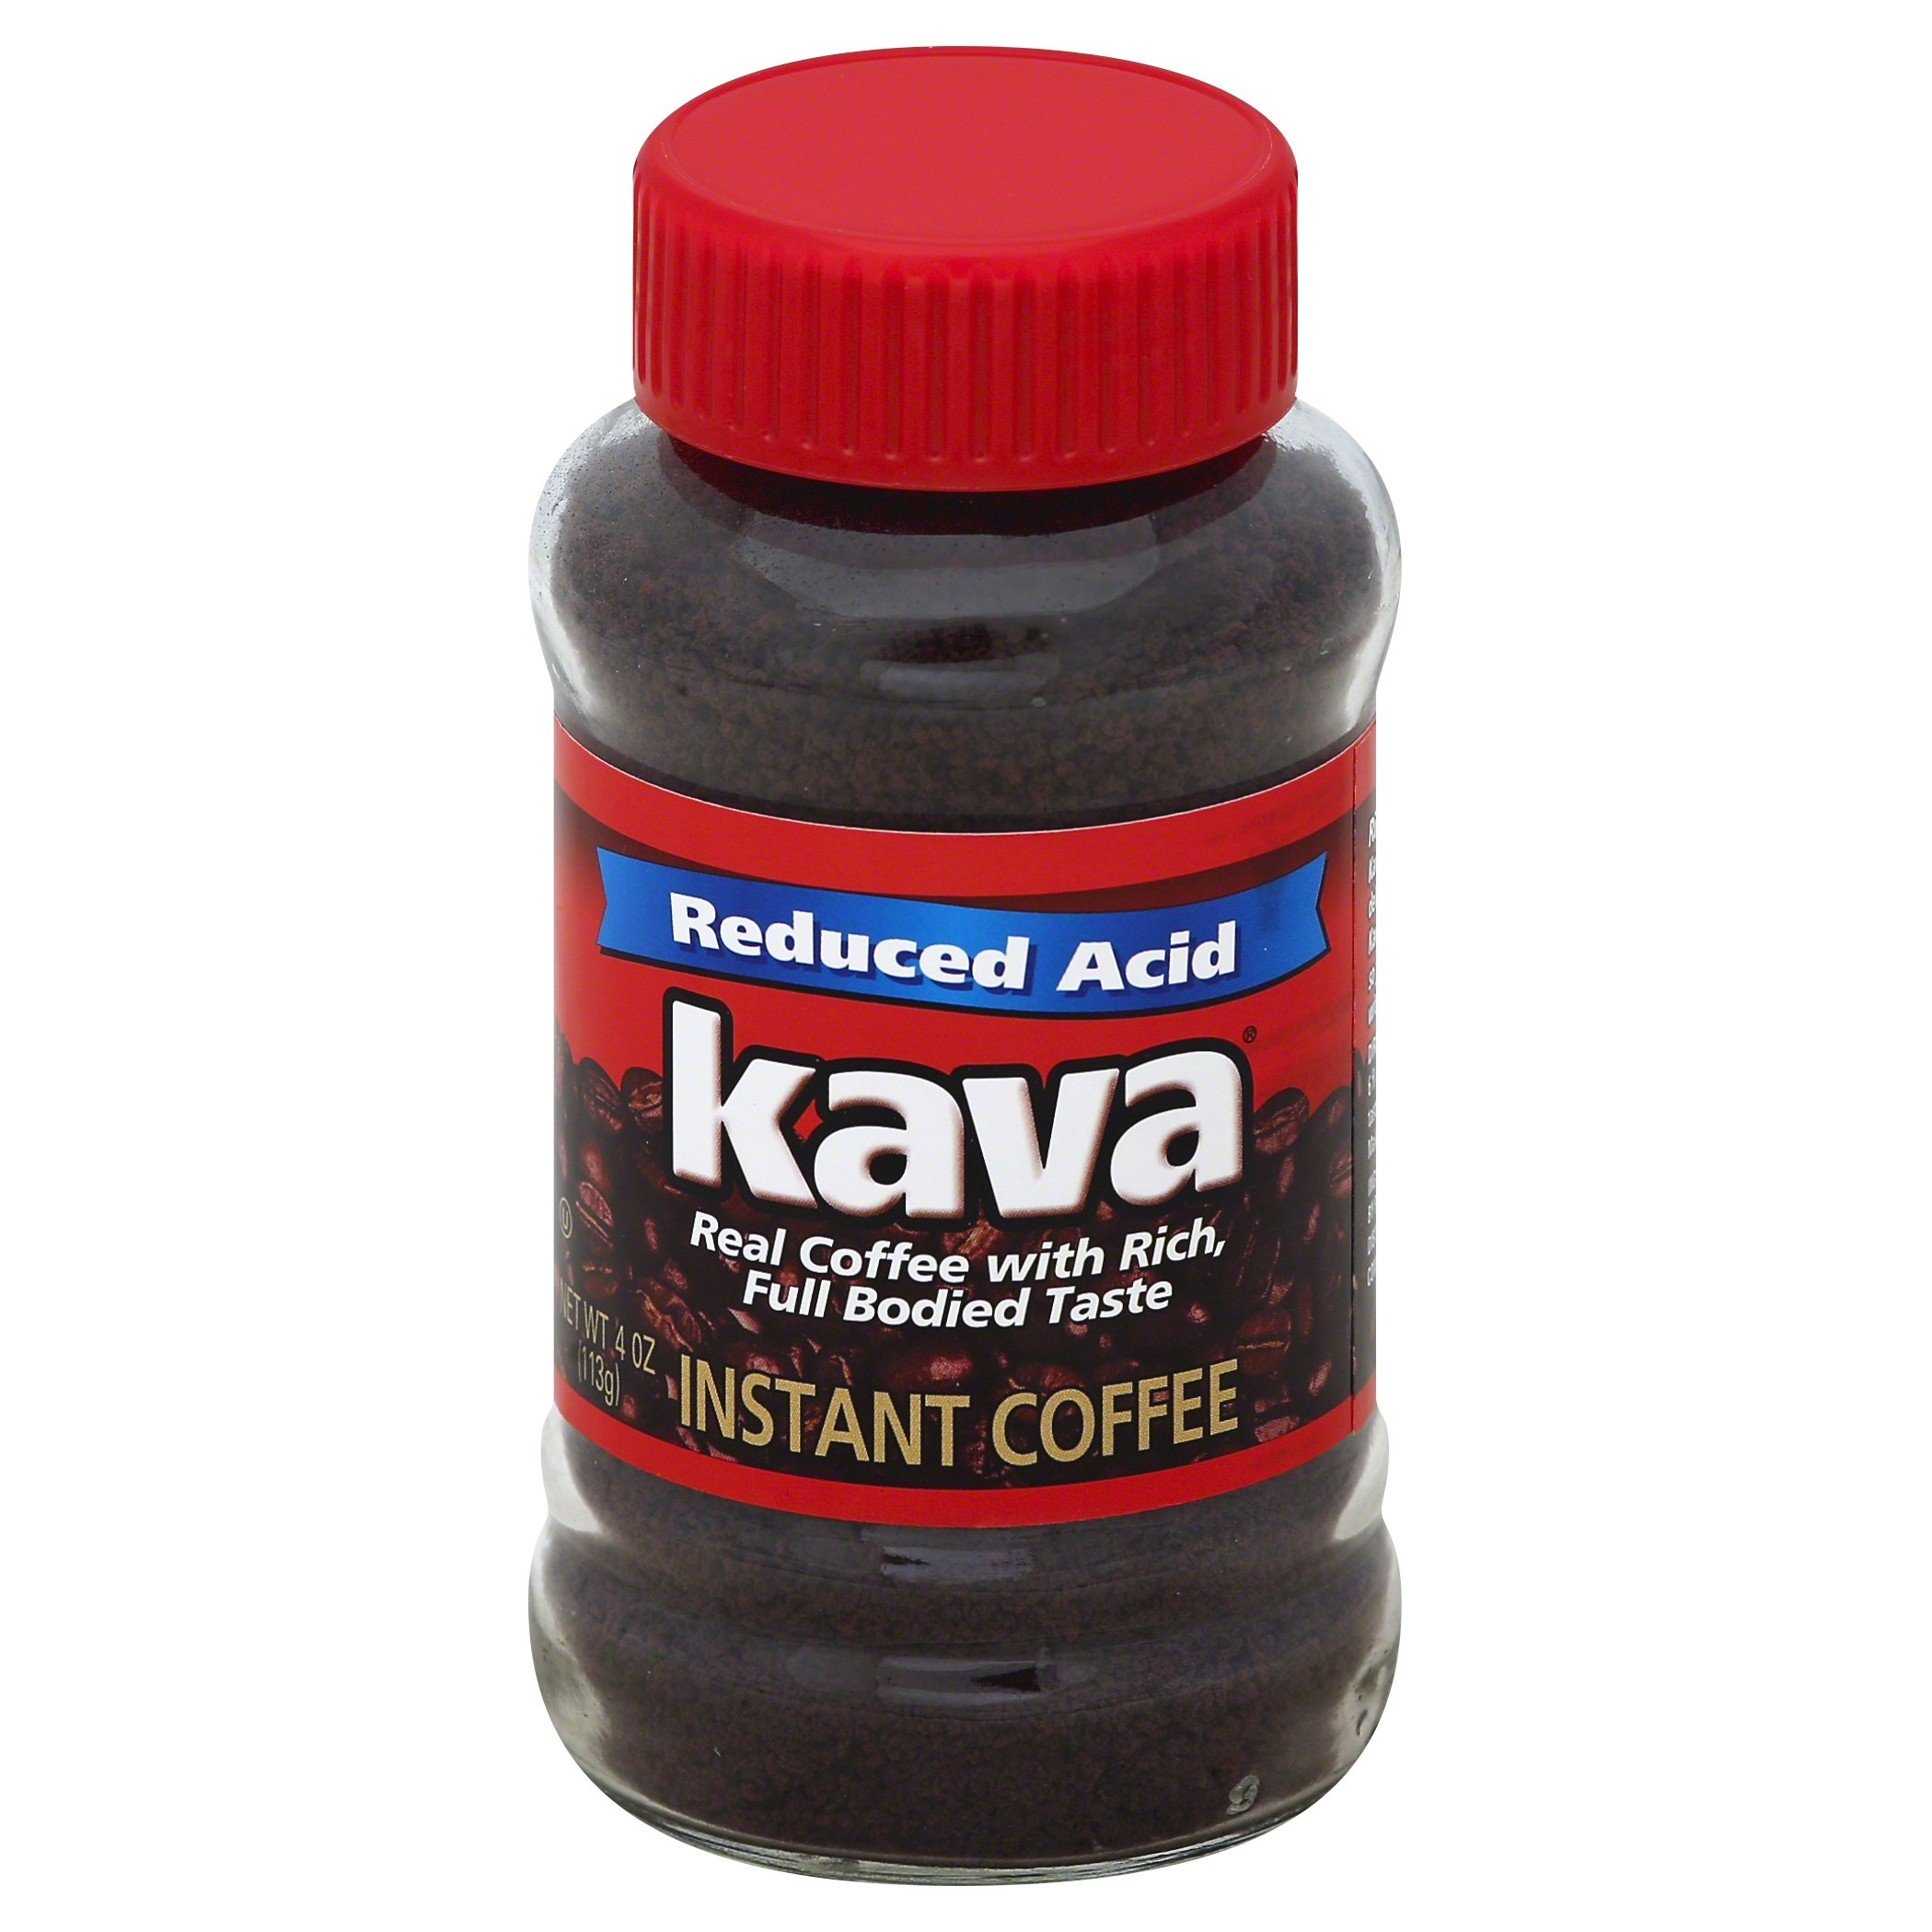 Kava Reduced Acid Instant Coffee, 4 Ounce Jars (Pack of 12) by Kava